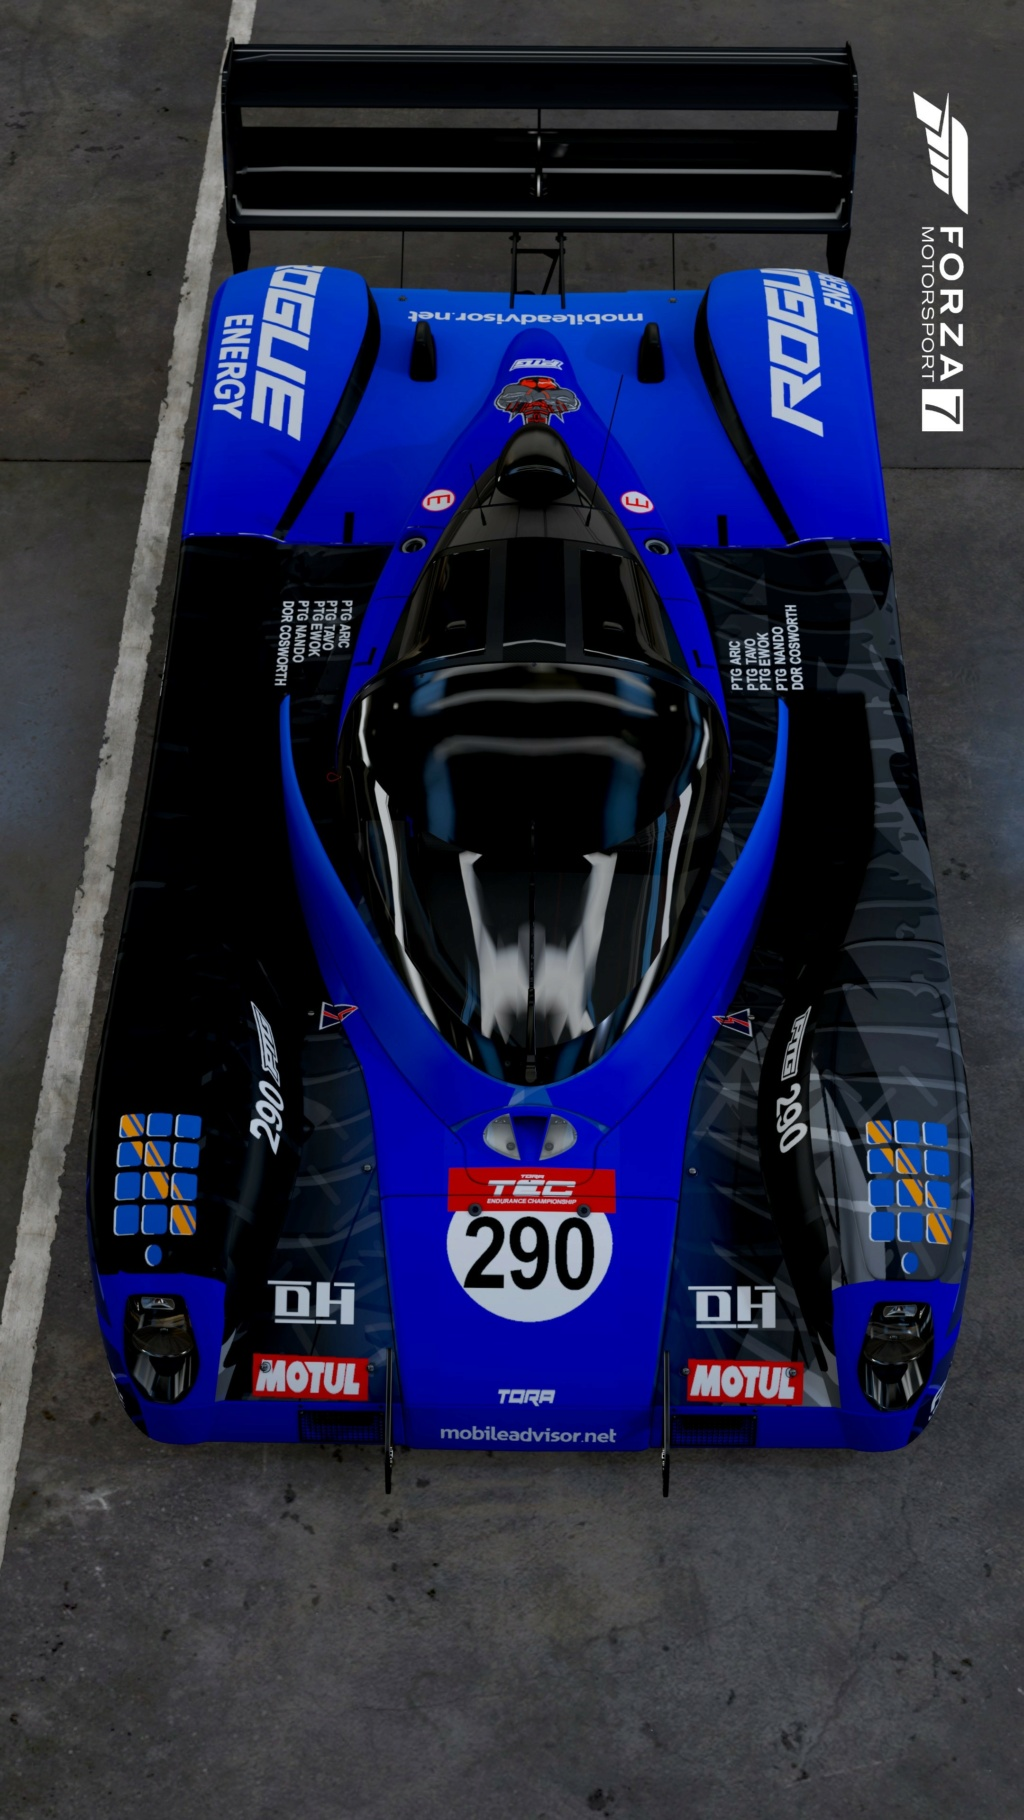 TEC R4 24 Heures du Mulsanne - Livery Inspection - Page 5 42f1a510